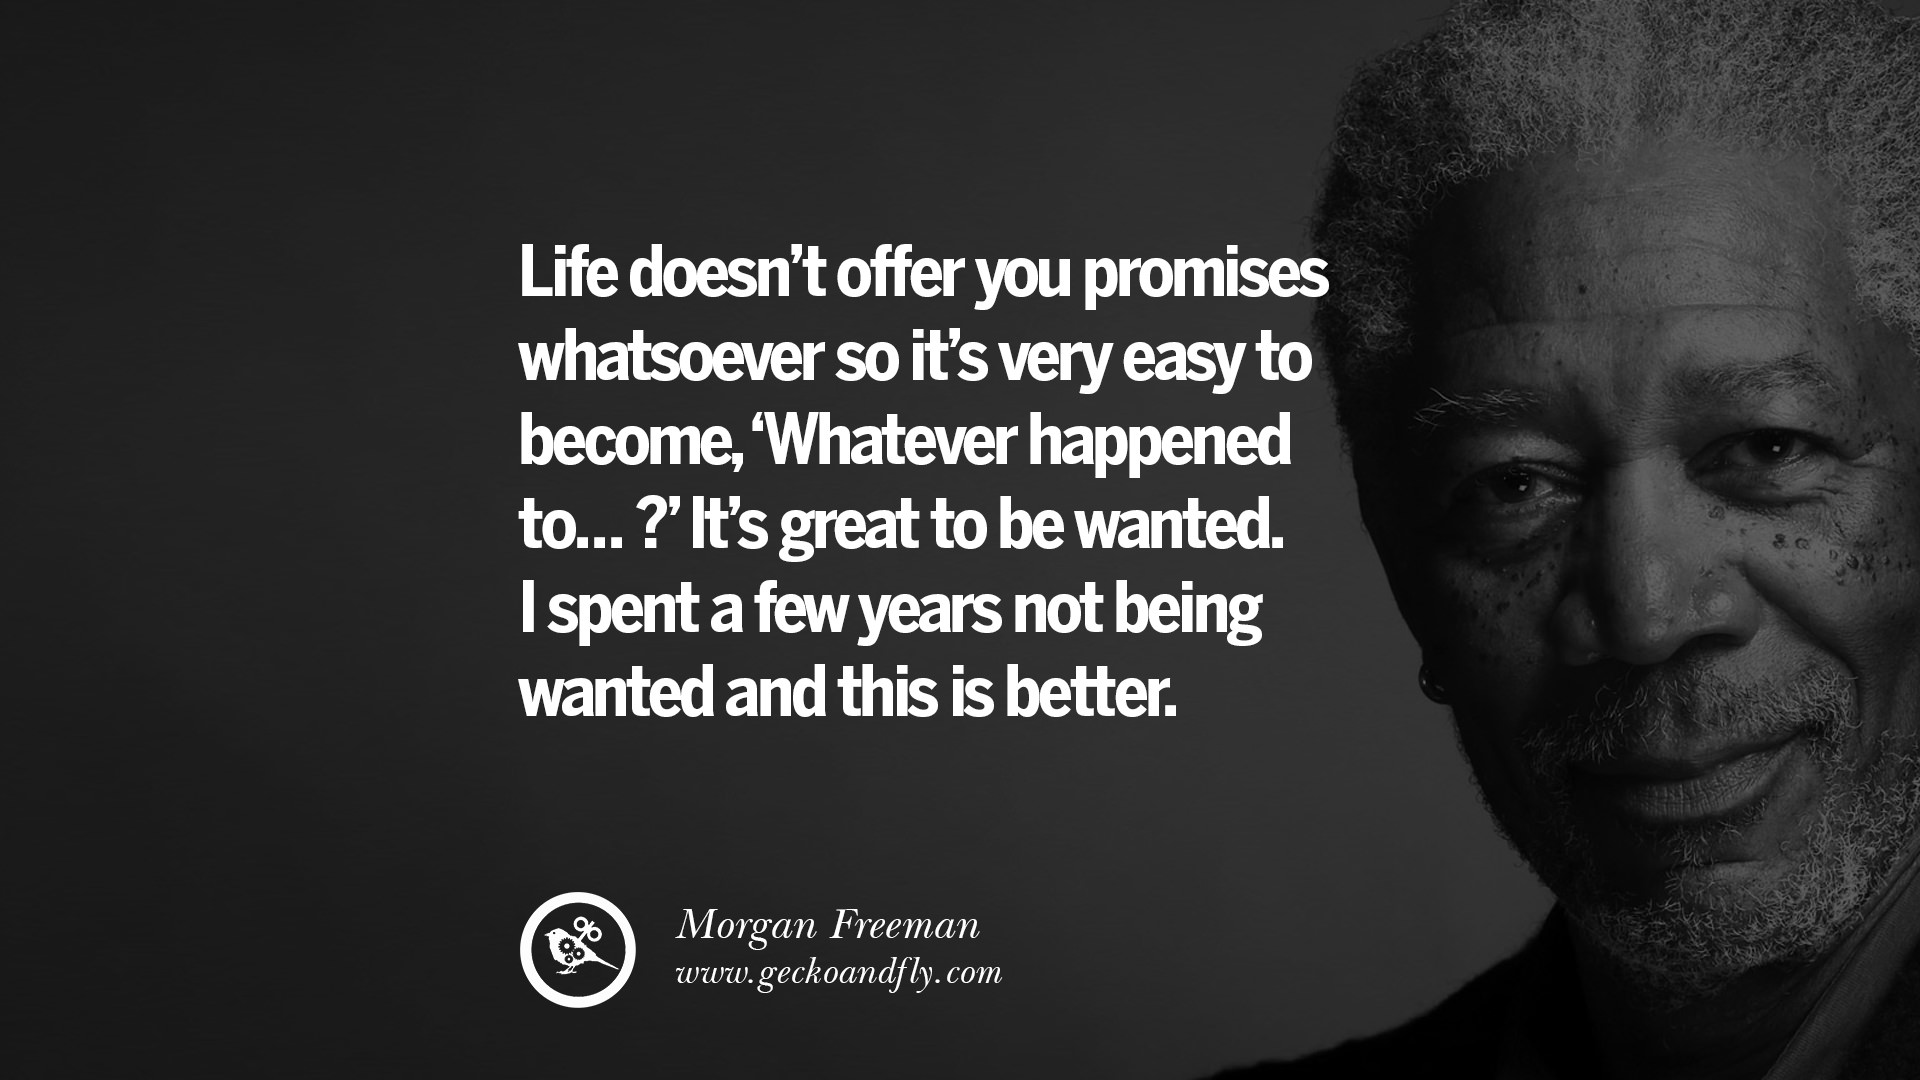 Great Quotes About Life 10 Morgan Freeman Quotes On Life Death Success And Struggle